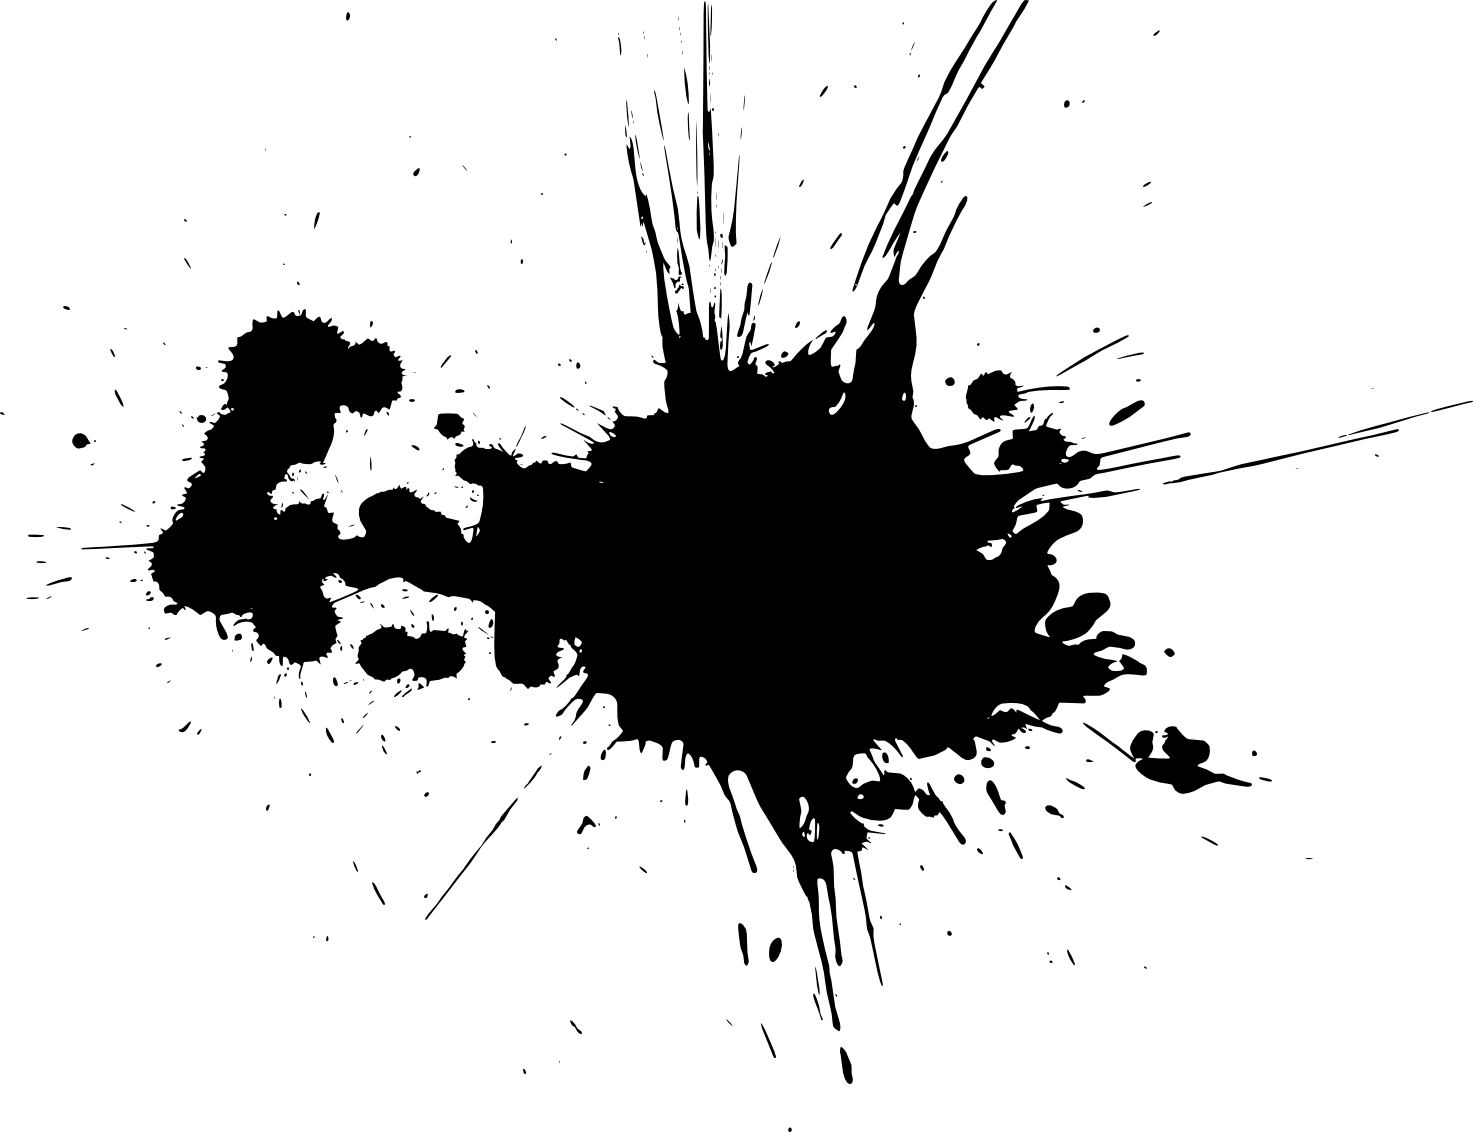 Splash of paint png. Splatters transparent onlygfx